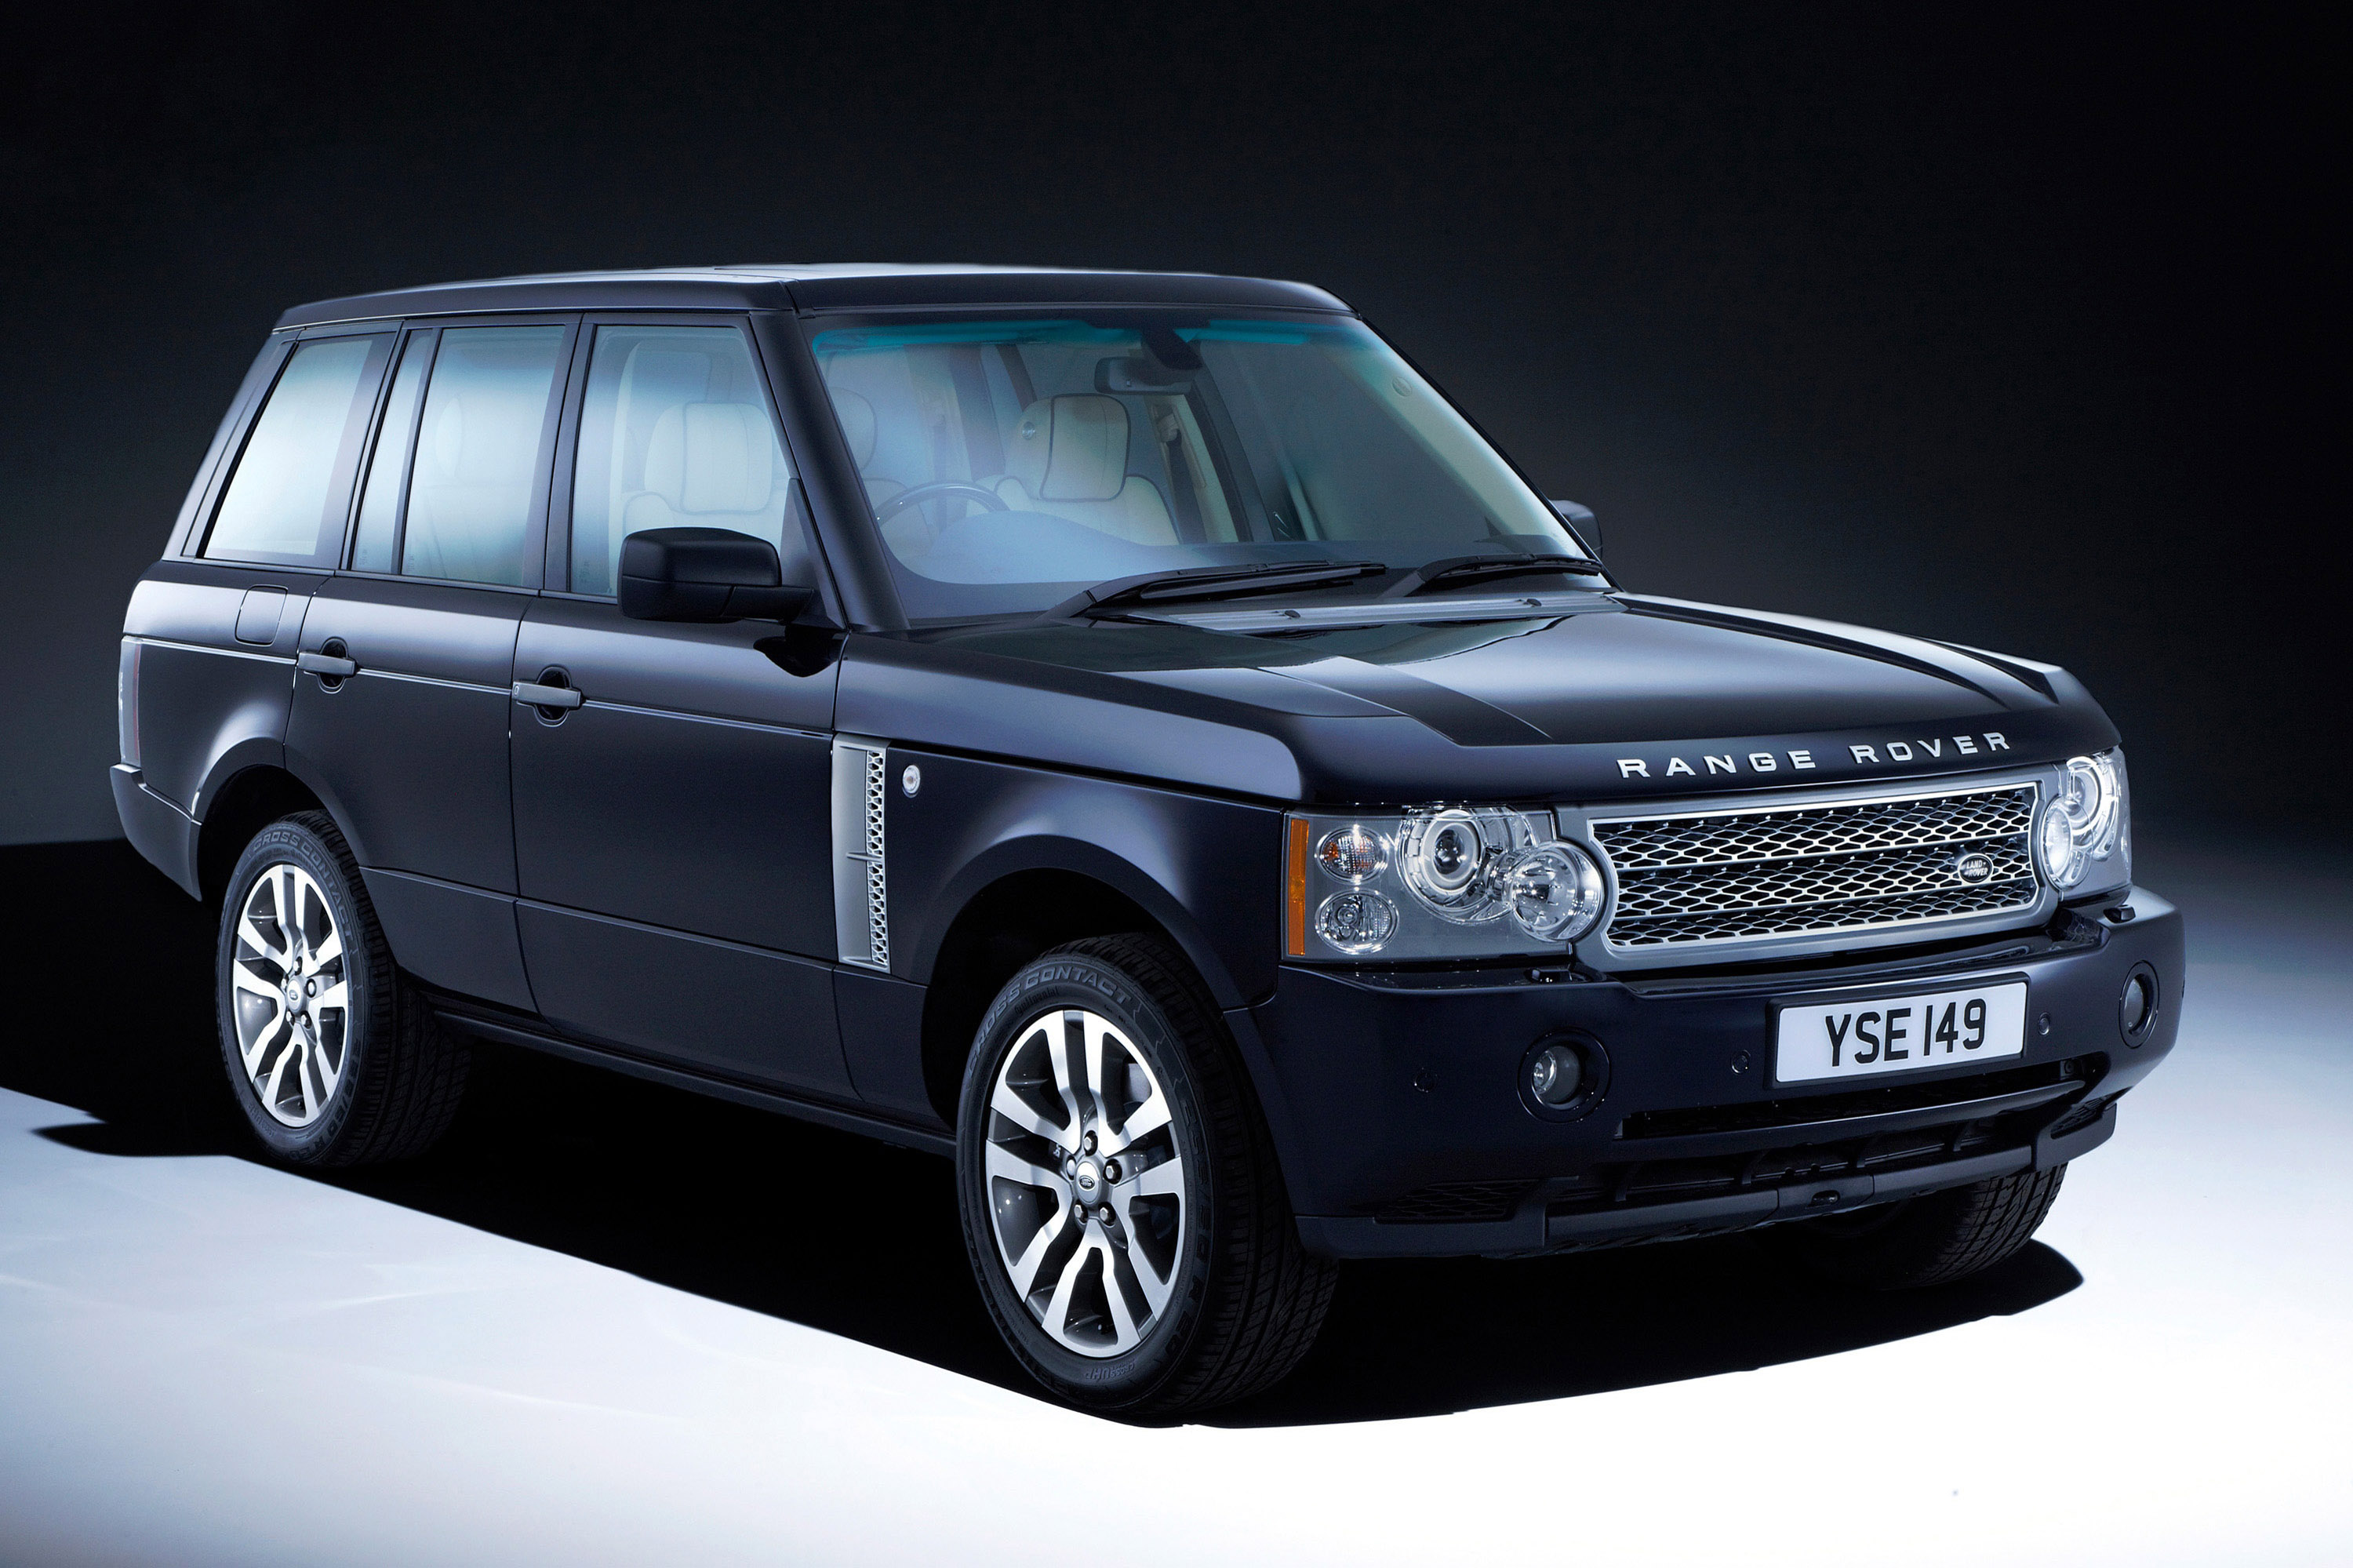 Range Rover Westminster Limited Edition - Picture 15102